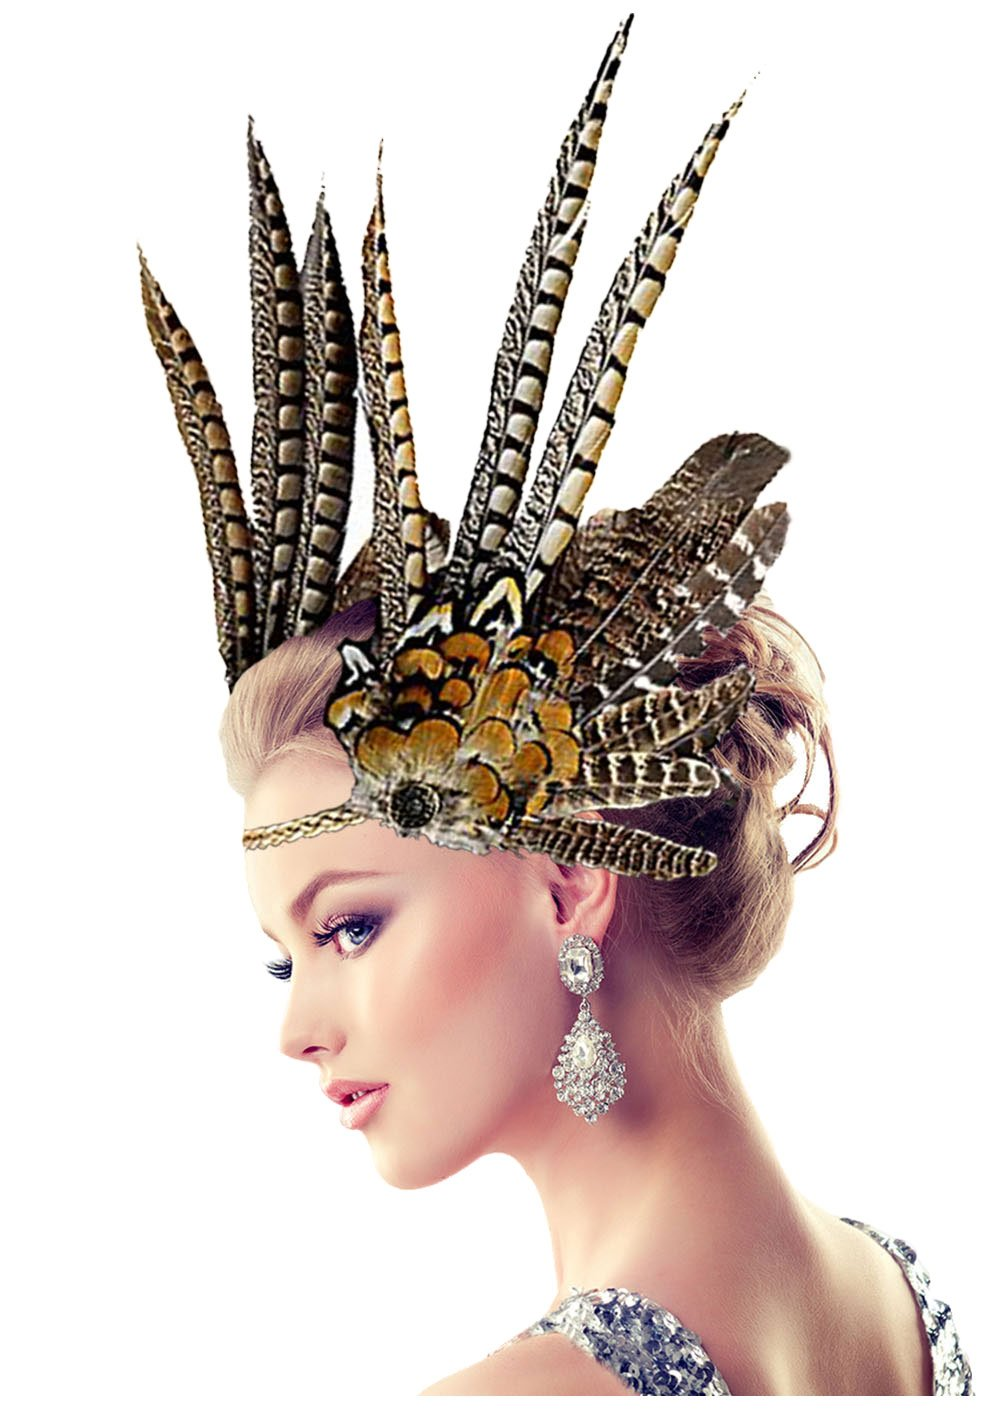 L'vow Indian Feather Headdress Hairband Headband for Halloween Cosplay Fancy Party